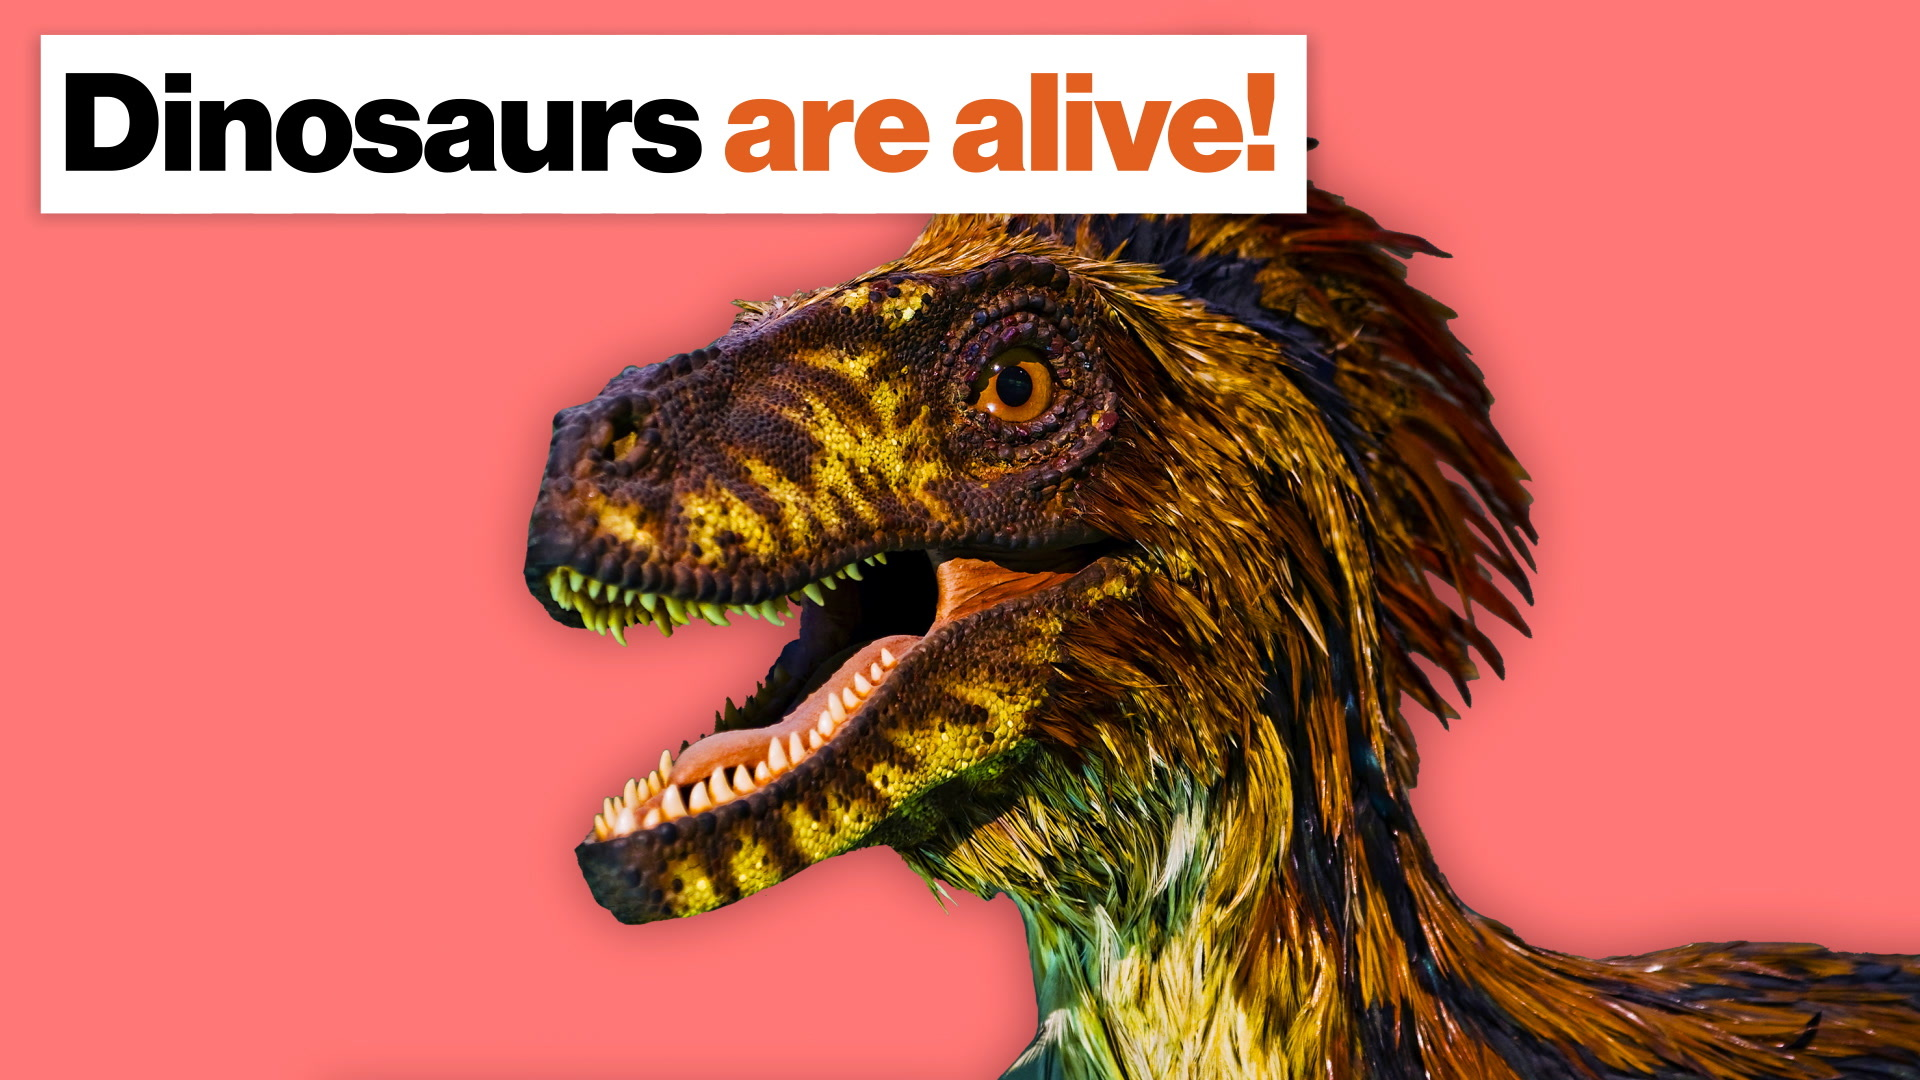 Dinosaurs are alive! Here's how we know, and why it matters